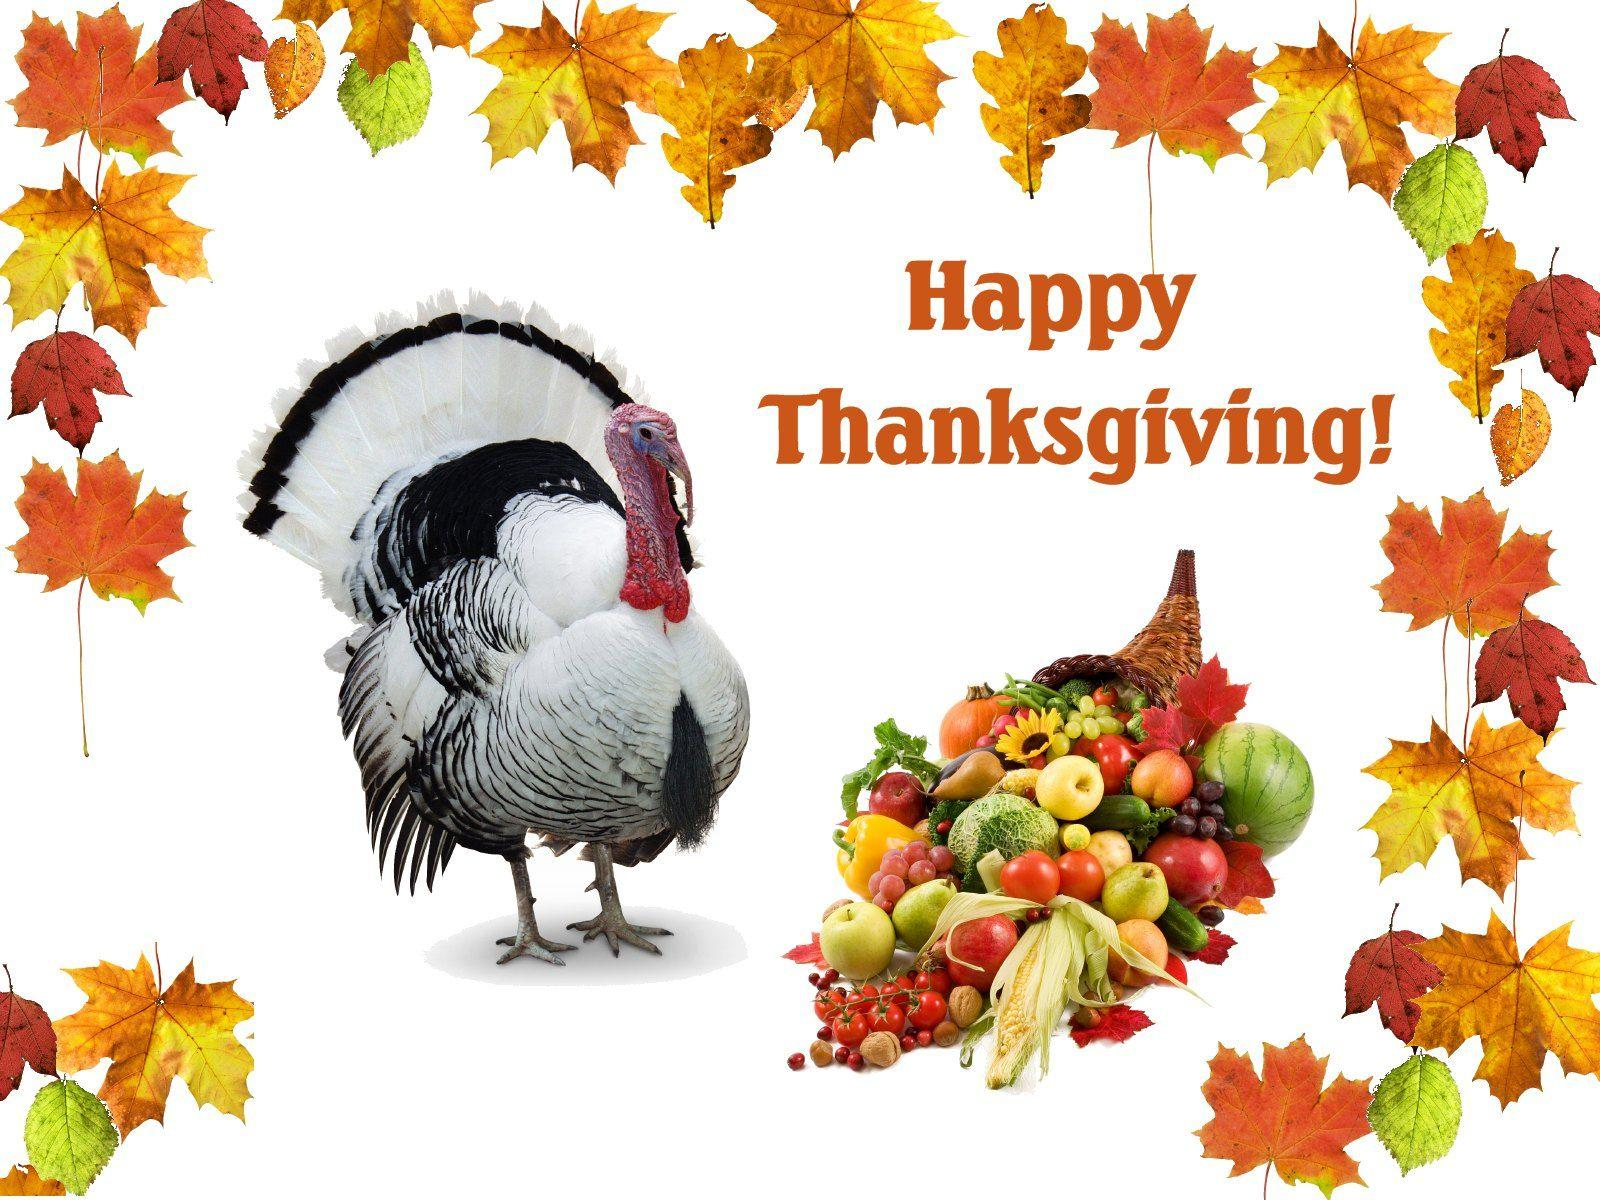 happy thankgiving day free wallpapers hd - HD Wallpaper